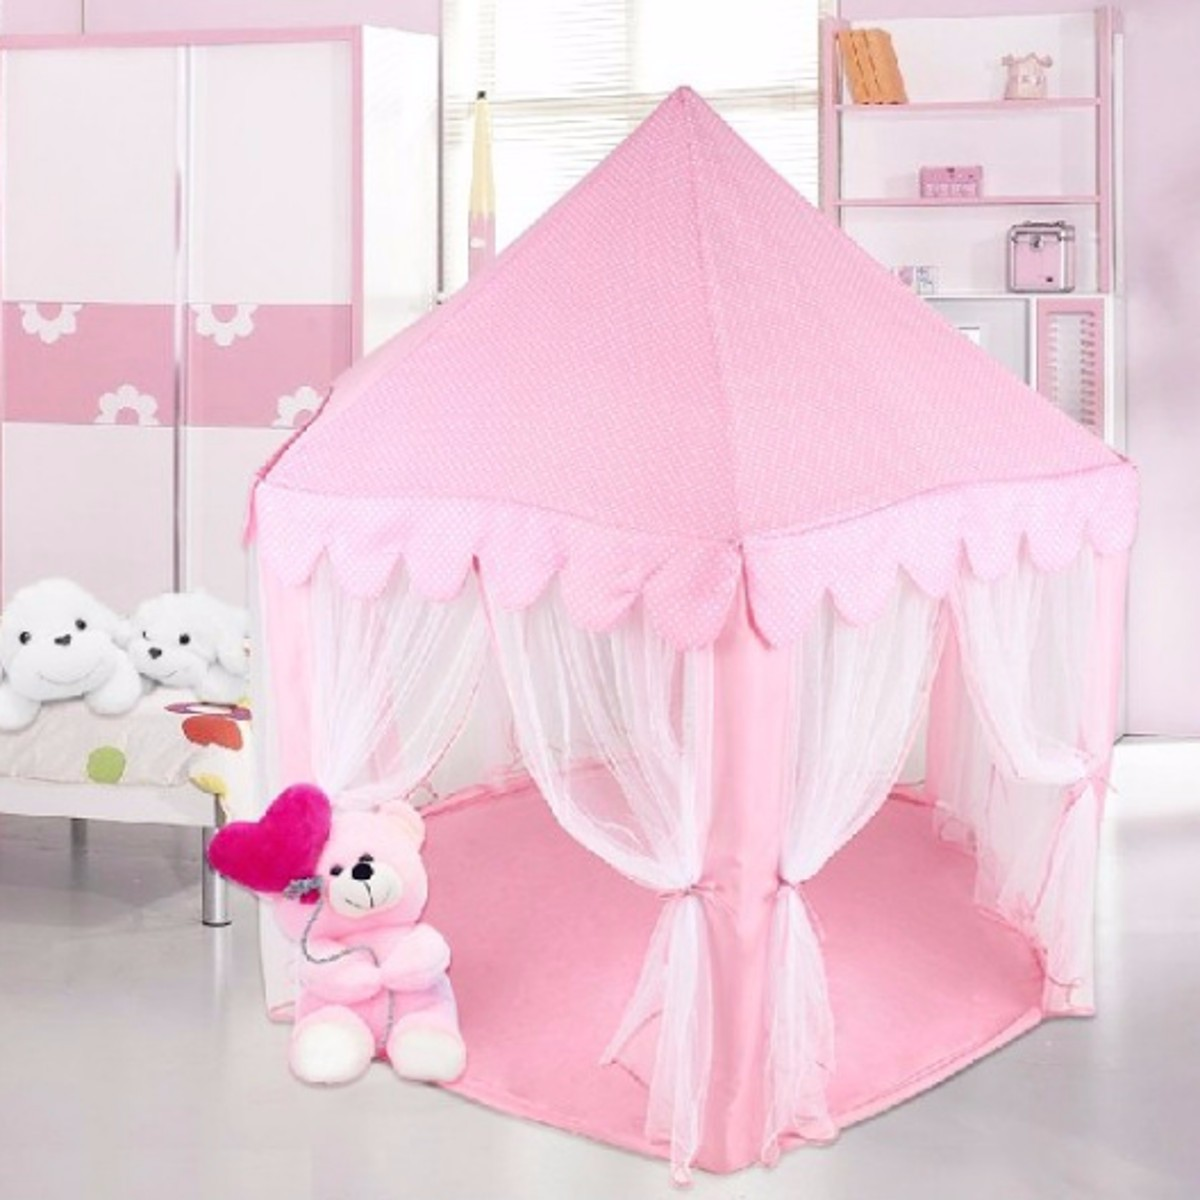 portable princess castle play tent activity fairy house fun playhouse beach tent baby playing. Black Bedroom Furniture Sets. Home Design Ideas